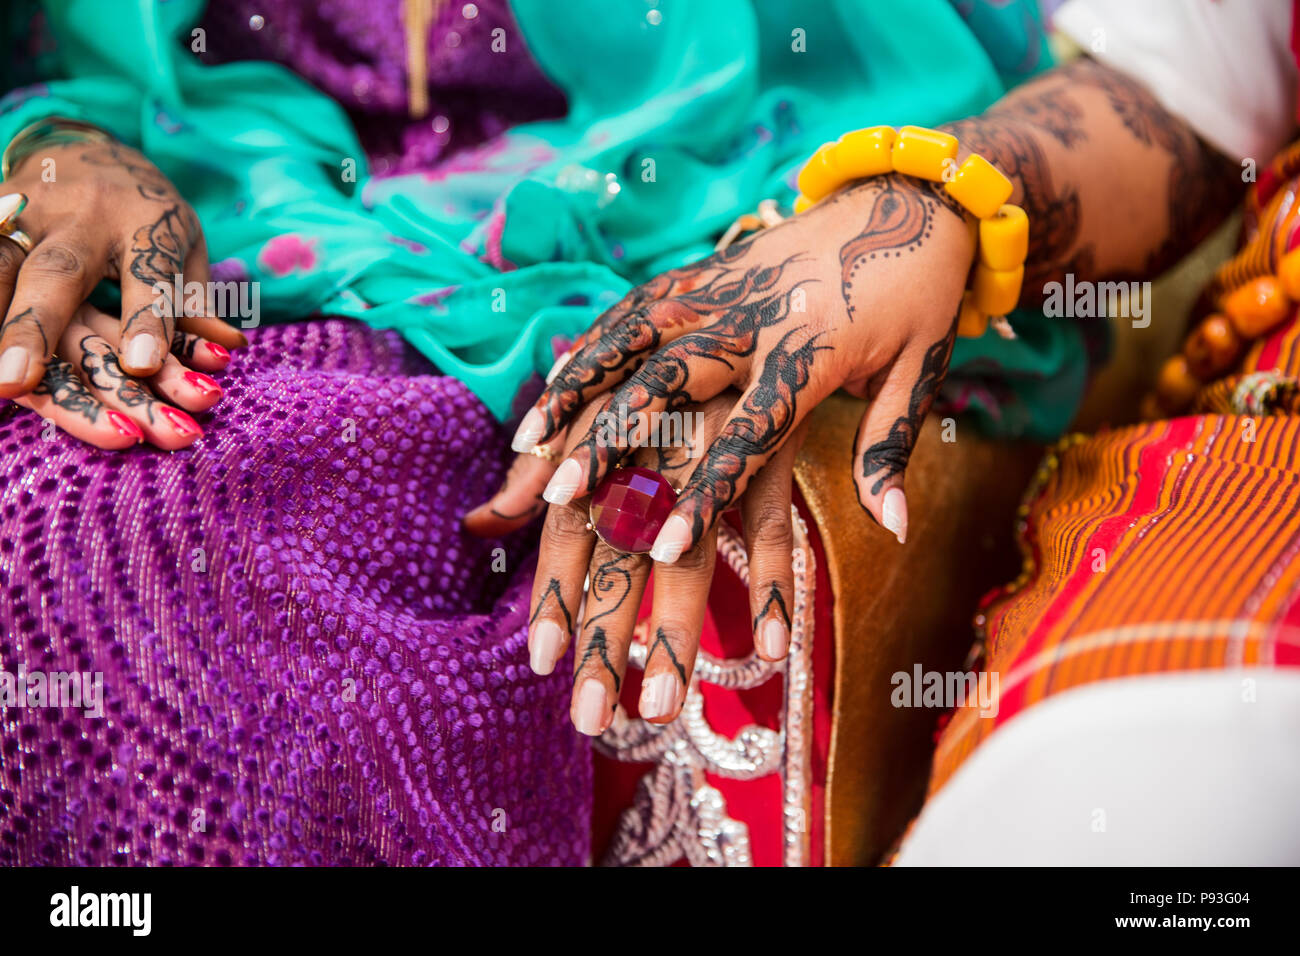 Black and Brown Henna Hands Drawings on Women for African Wedding Ceremony Stock Photo